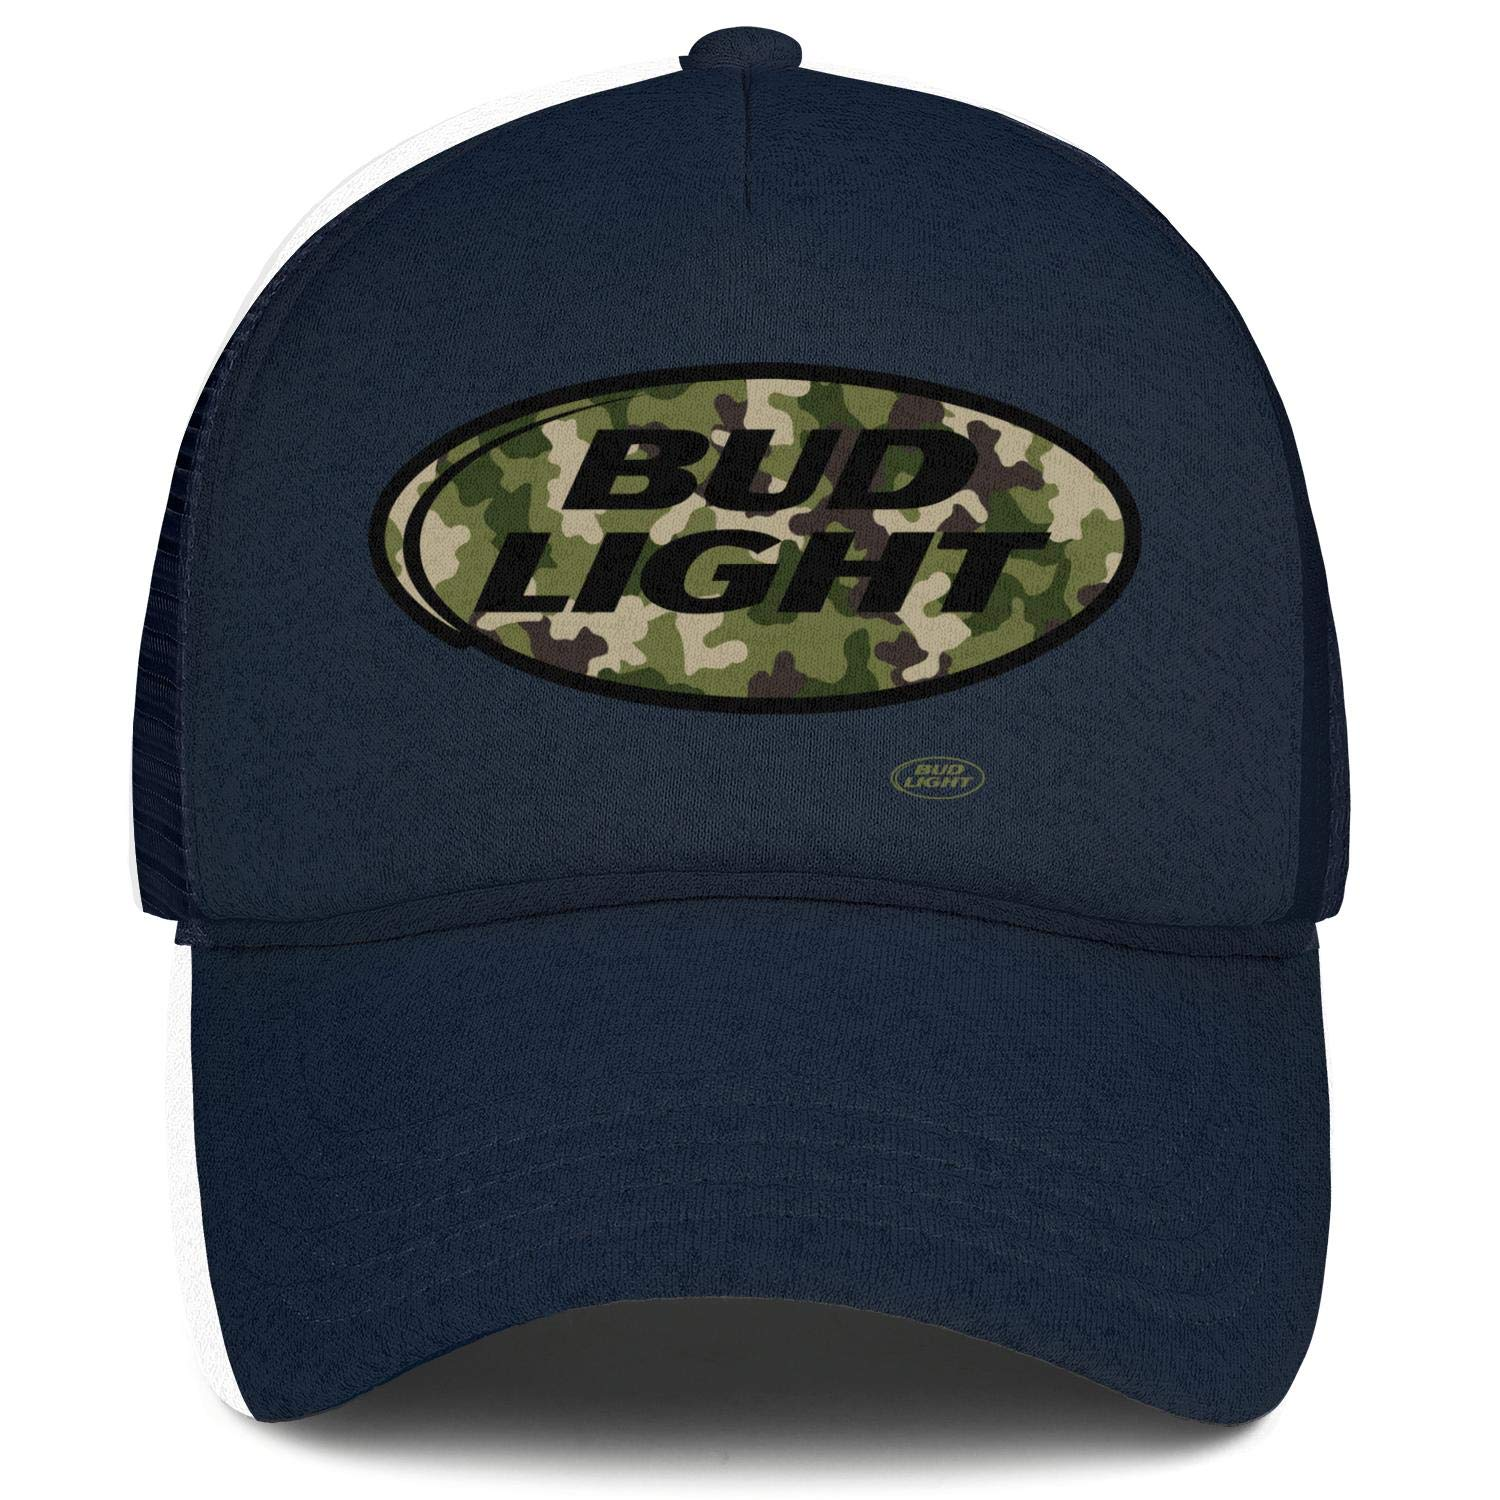 Men Unisex Adjustable Bud-Light-Beer-United-States-Black-Camouflage-Army-Baseball Cap Sports Flat Hats